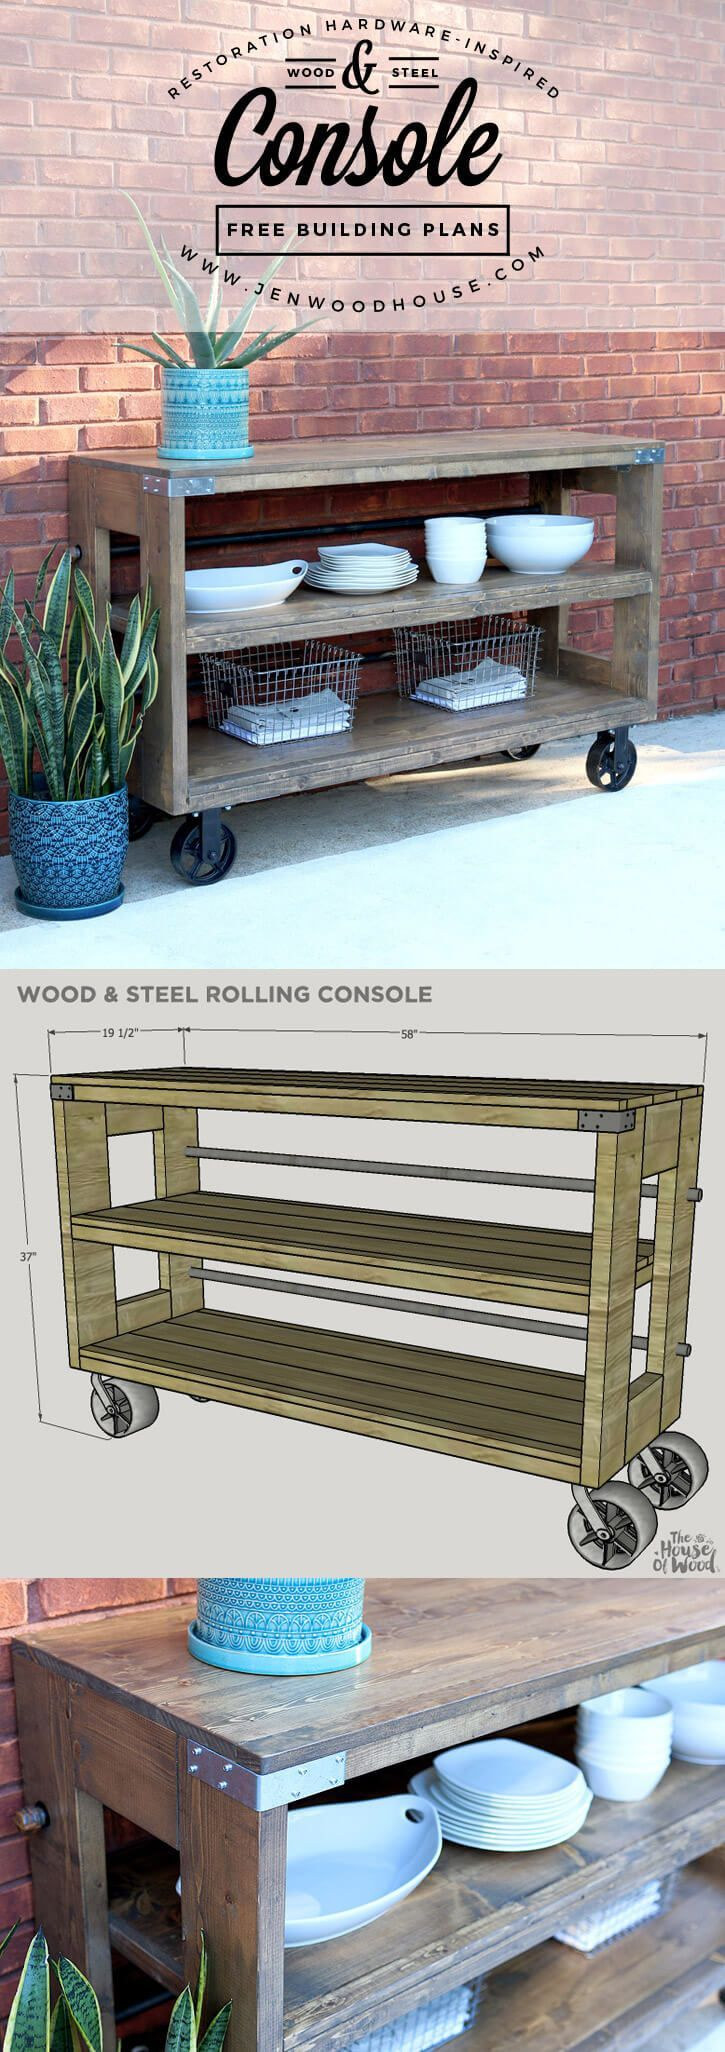 Steel and Wood Repurposed Rolling Console